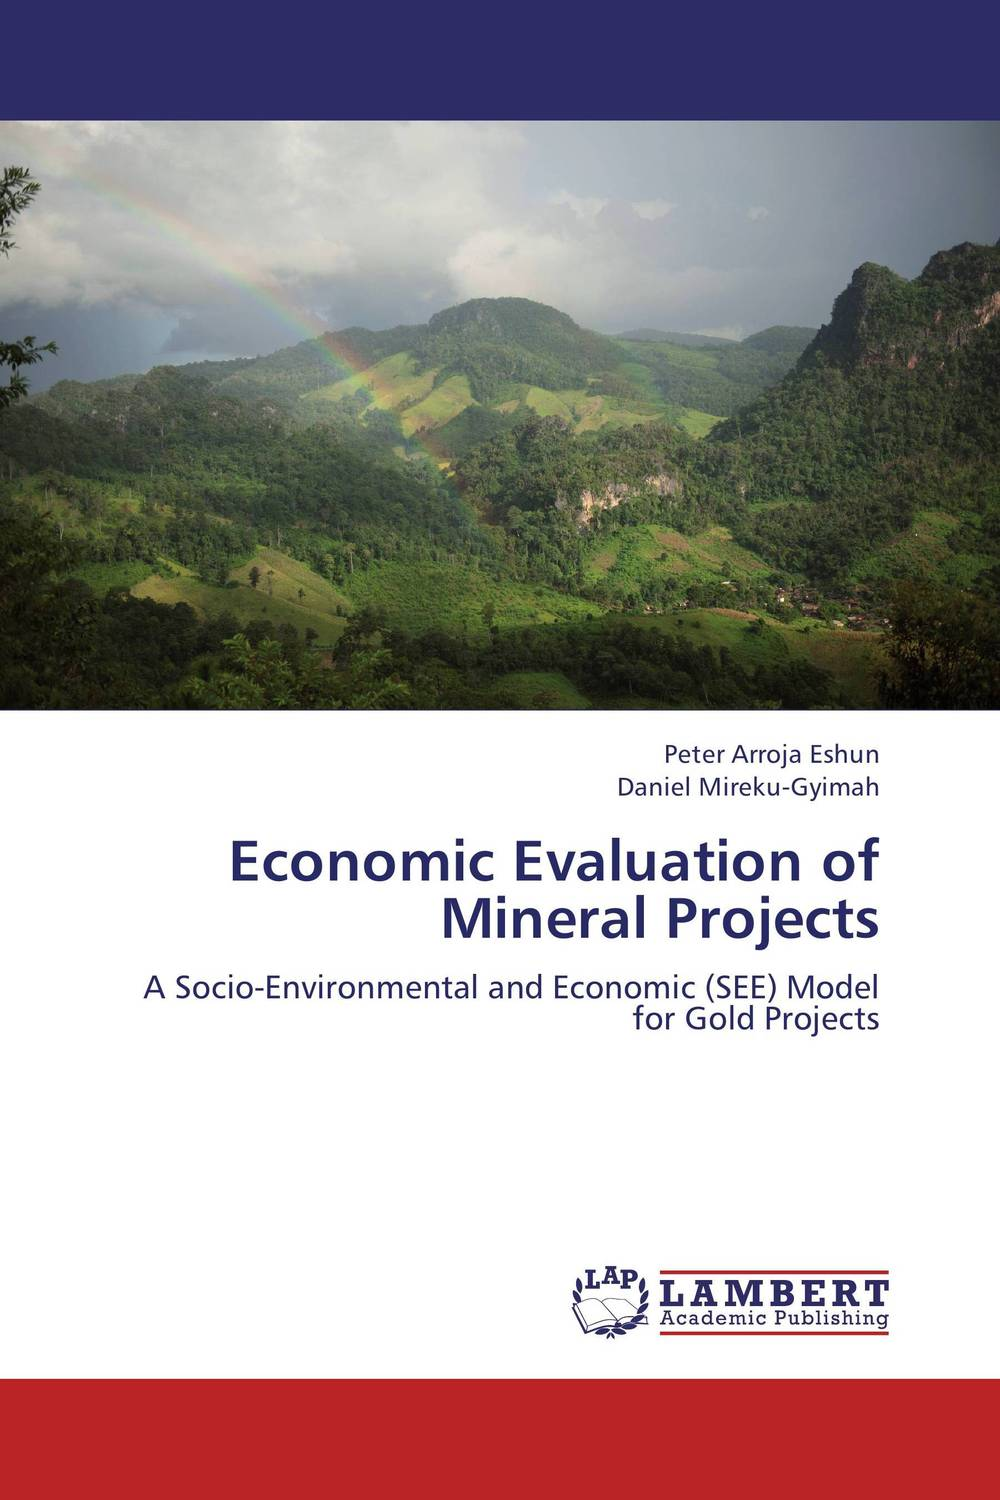 Economic Evaluation of Mineral Projects c gonzalez alternative methodologies for social assessment of environmental projects